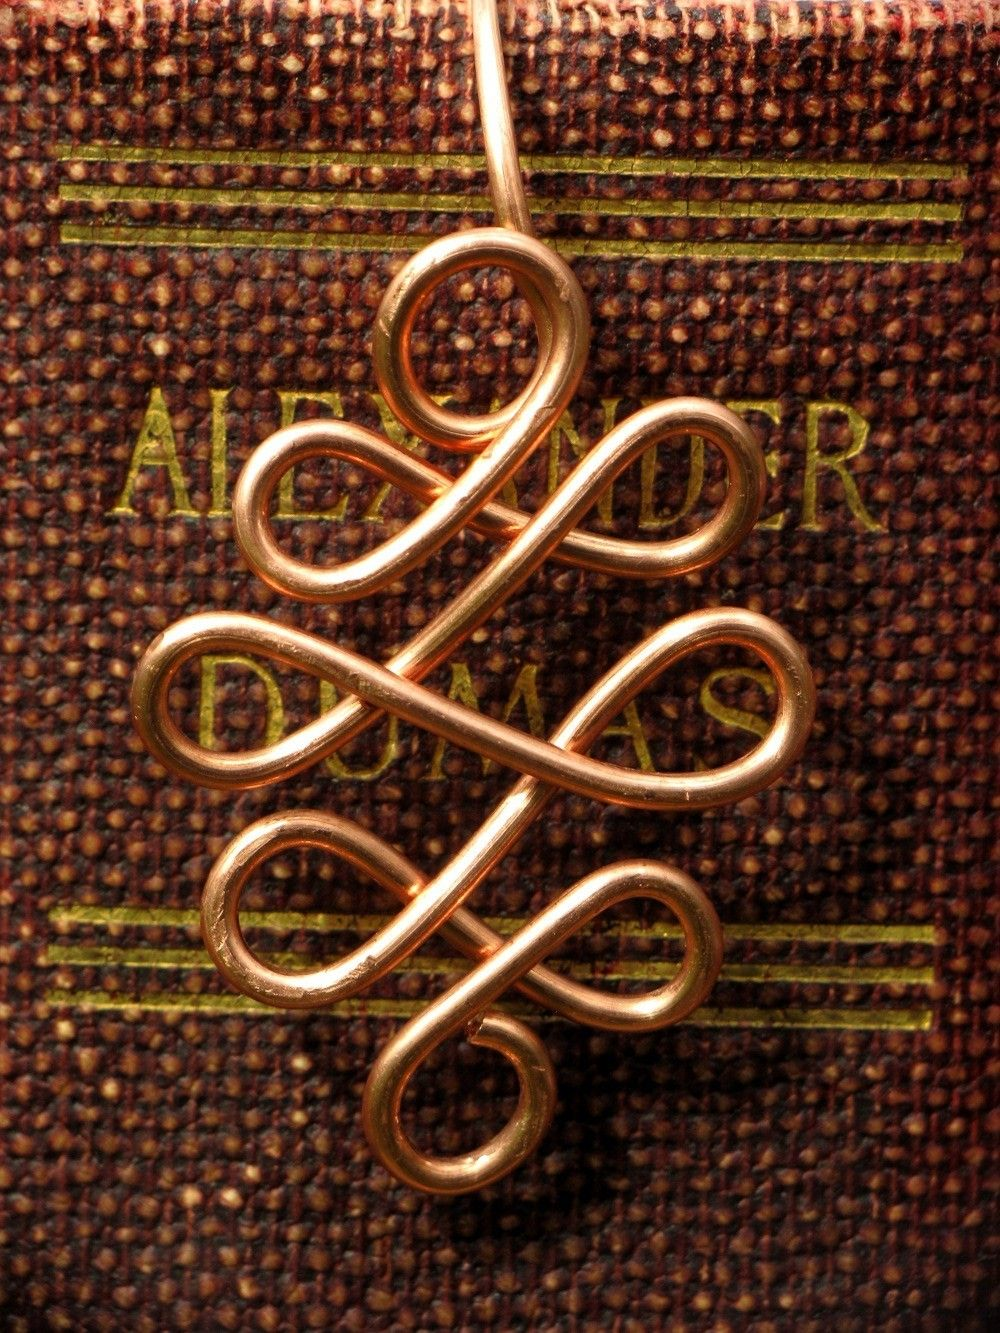 Celtic Scrollwork Bookmark - Handmade from Copper, Copper Bookmark, Metal Bookmark. $10.00, via Etsy.